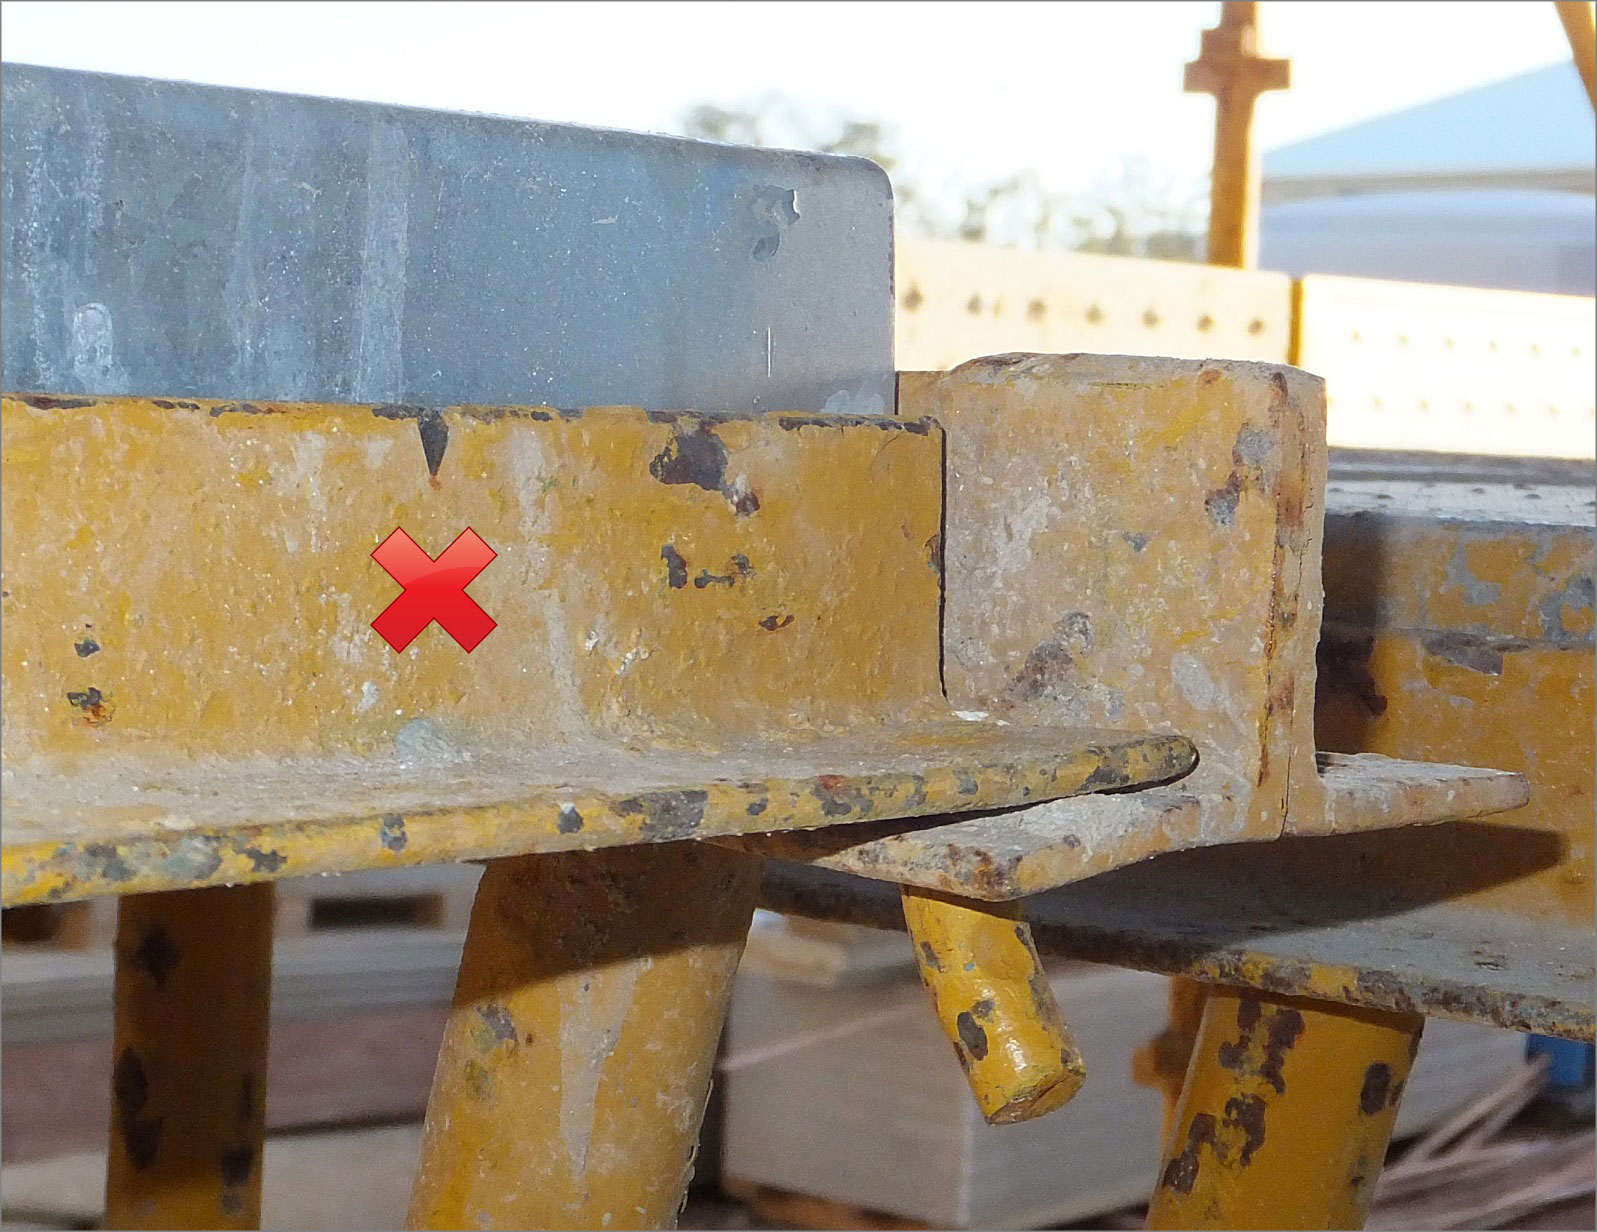 Photograph 8: Pin pointing away from scaffolding with plank next to tie bar – unsafe.